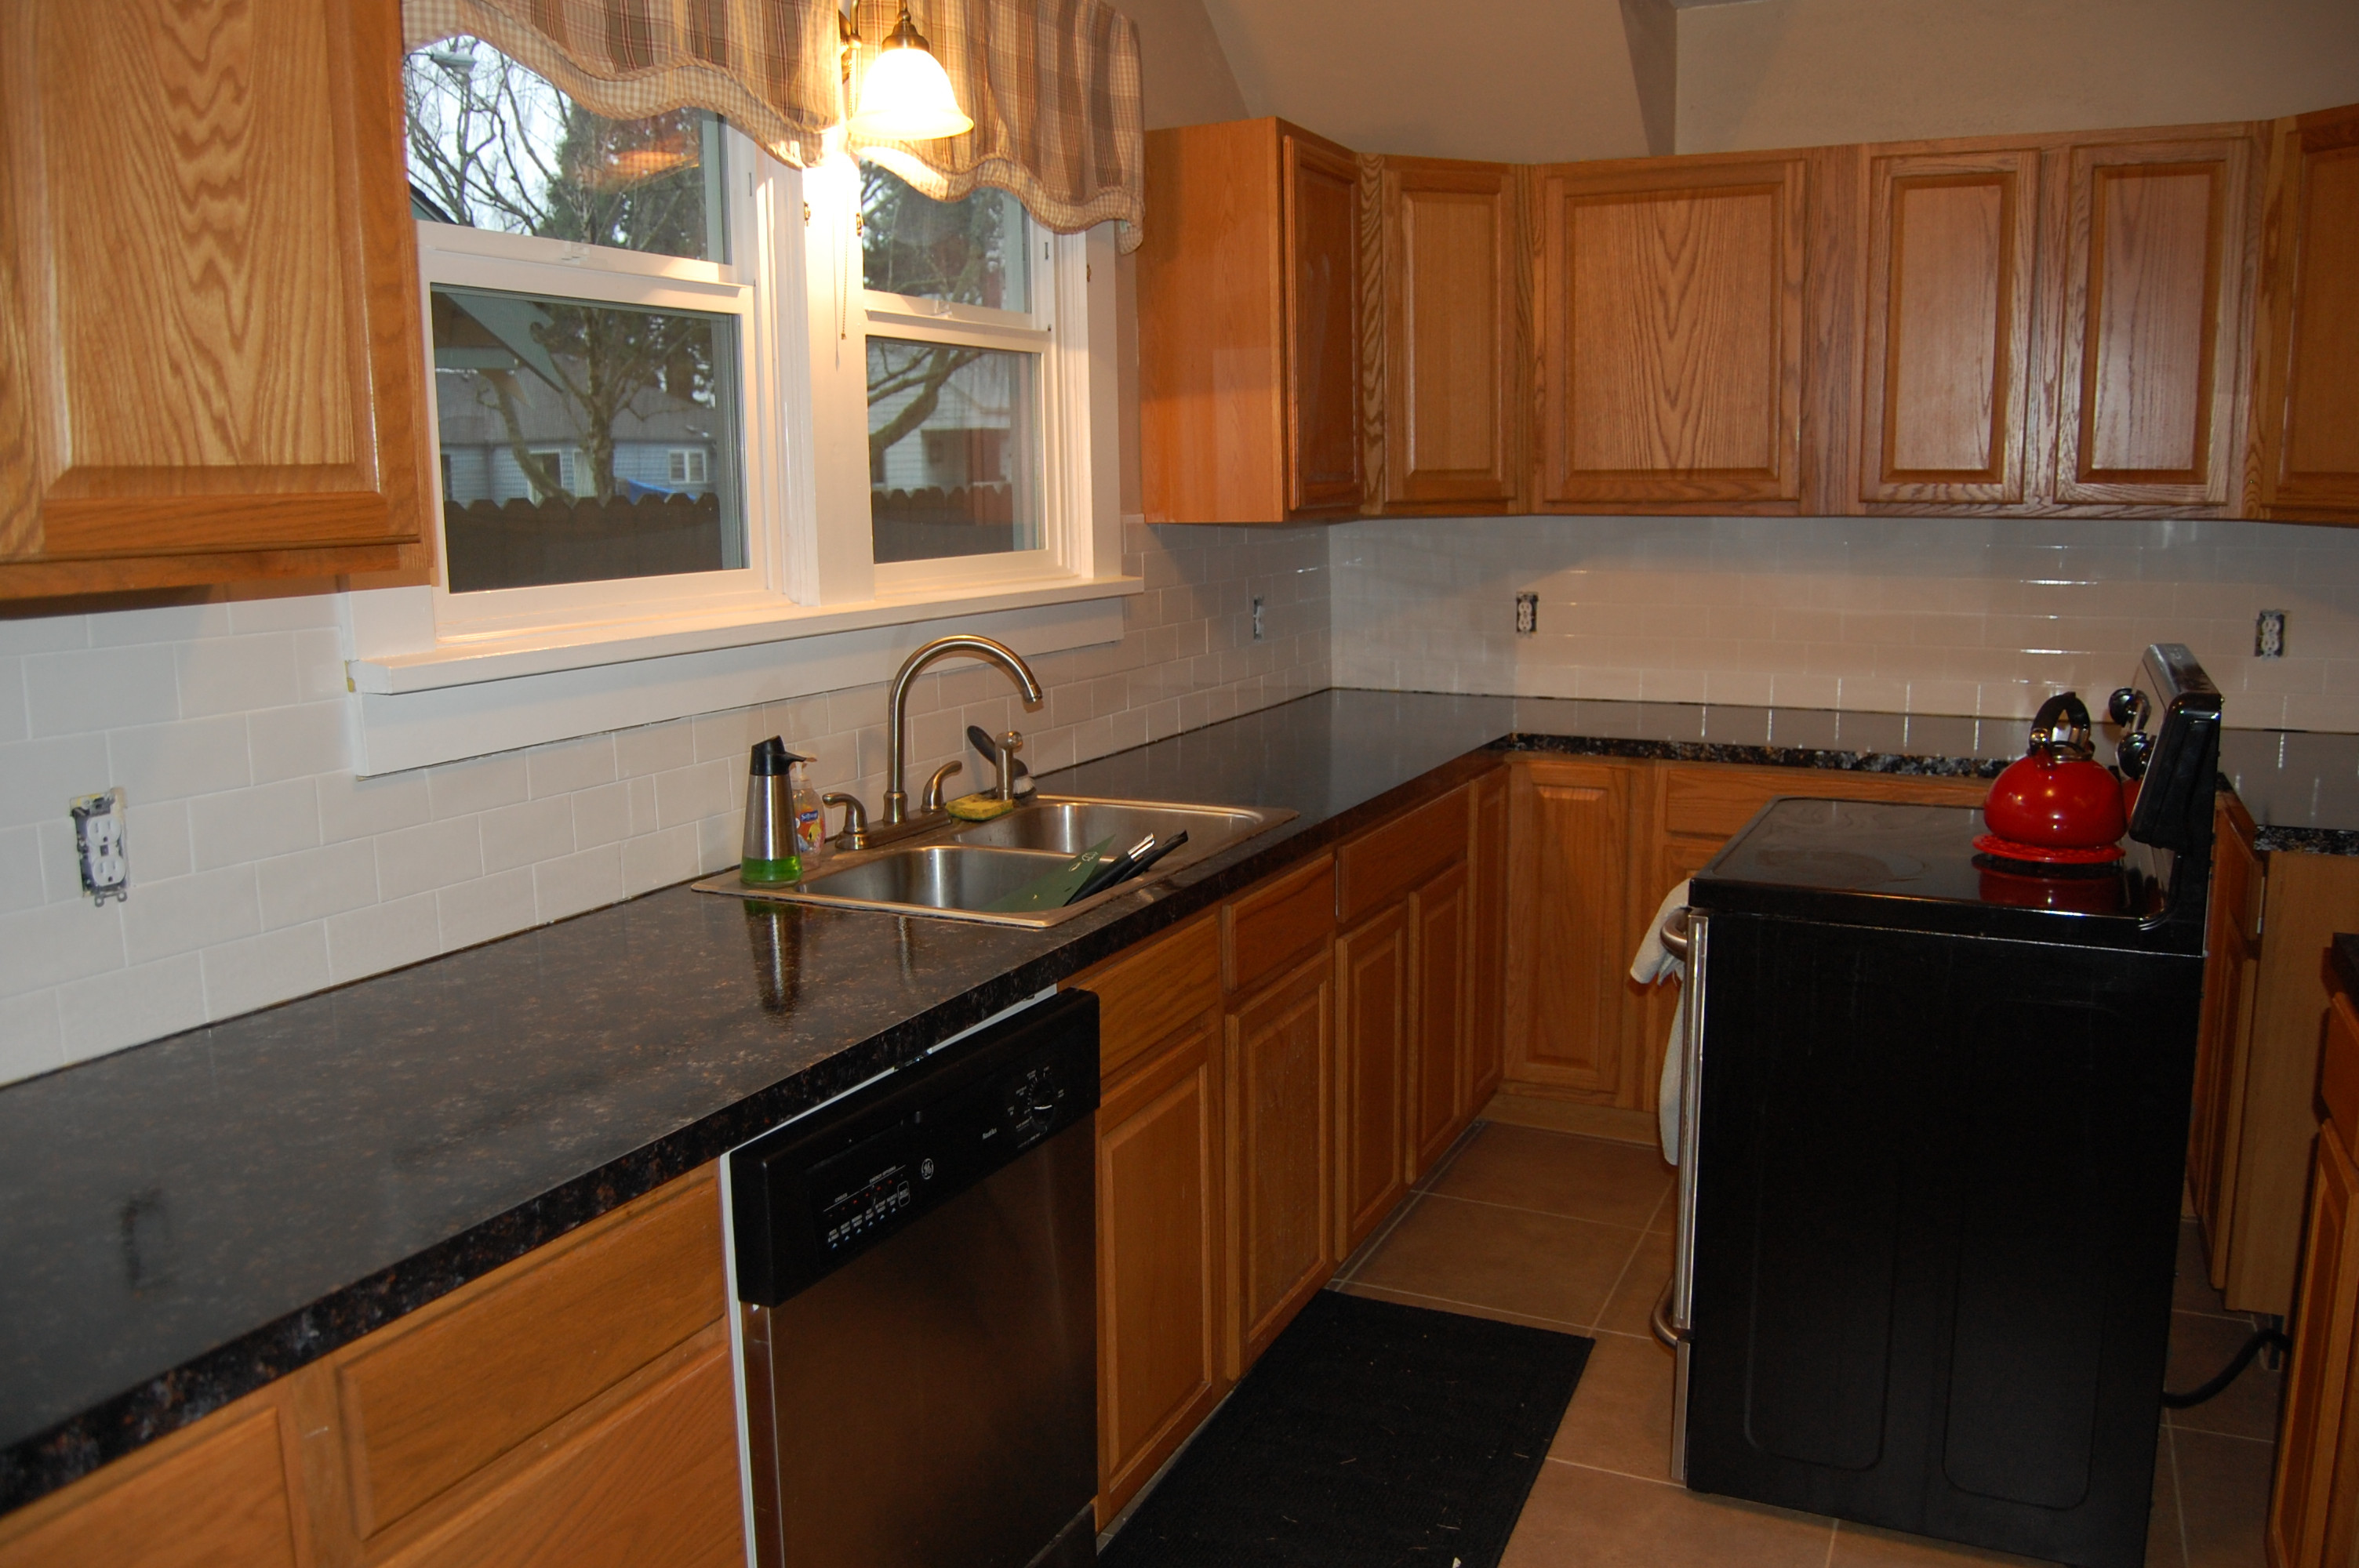 Best ideas about DIY Kitchen Cabinets Paint . Save or Pin Painting Kitchen Cabinets Now.